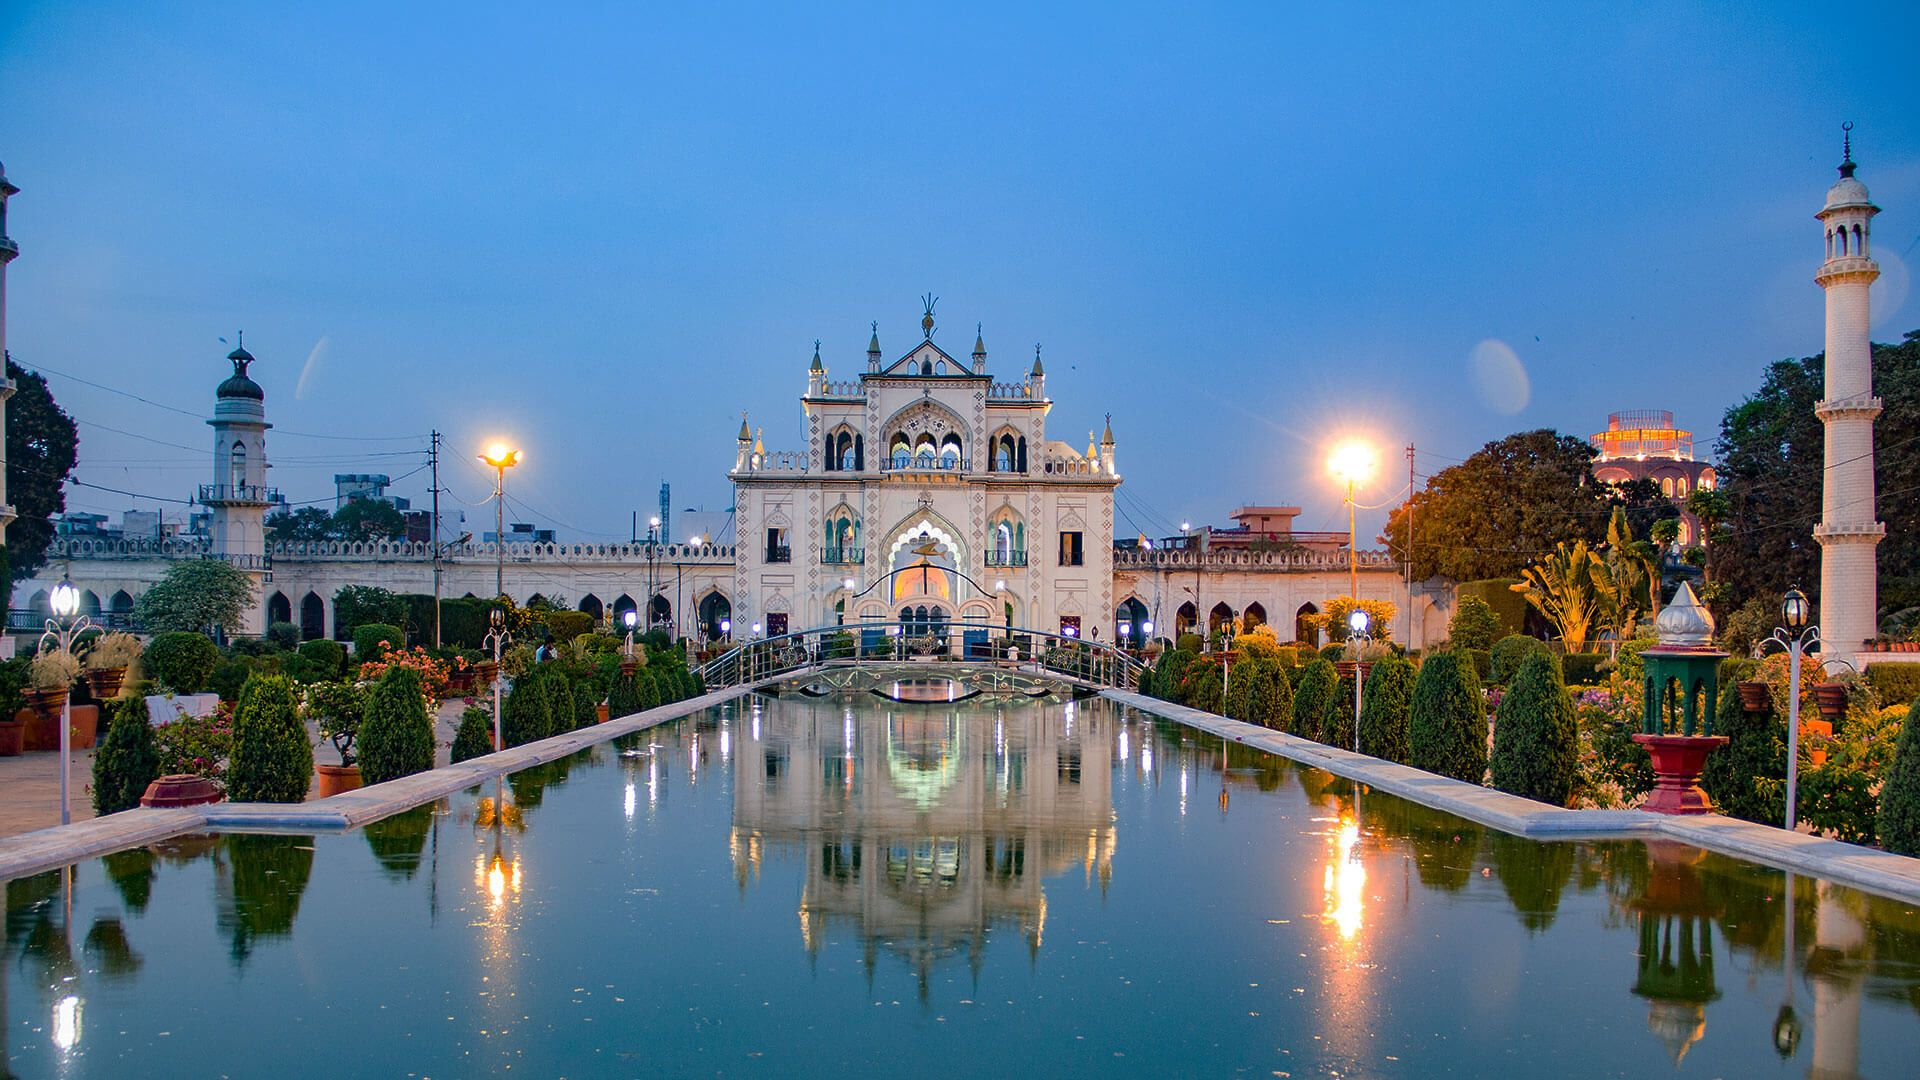 Chhota Imambara Uttar Pradesh Tourism Travel Destinations In India Perfect Vacation Spots Famous Monuments